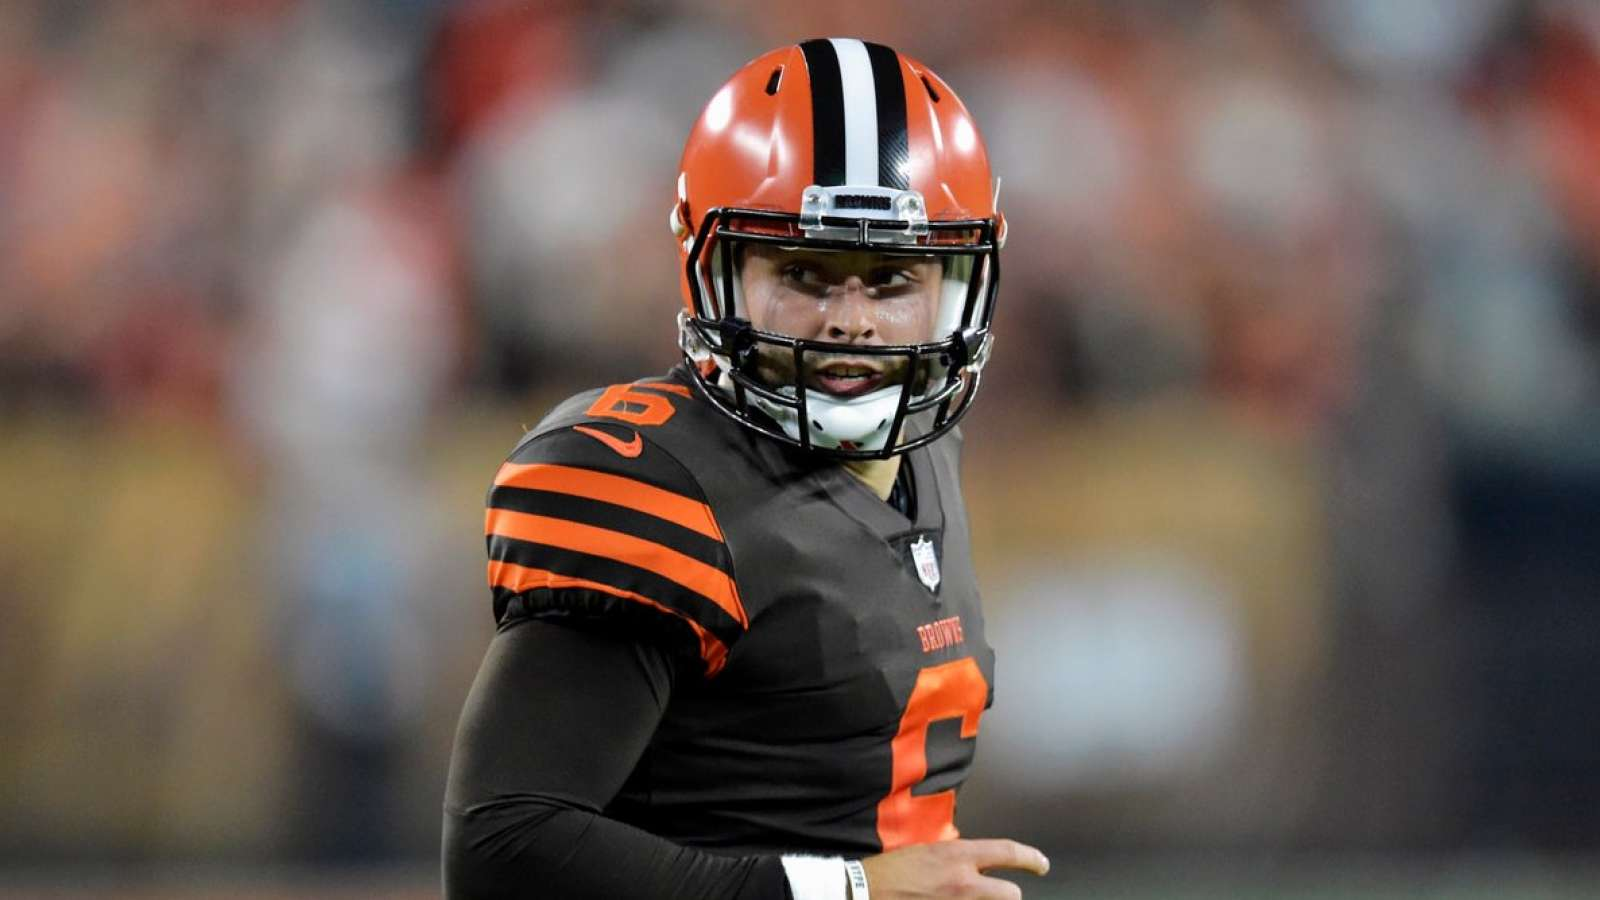 f39dac2cc Baker Mayfield Named Starting QB For Browns